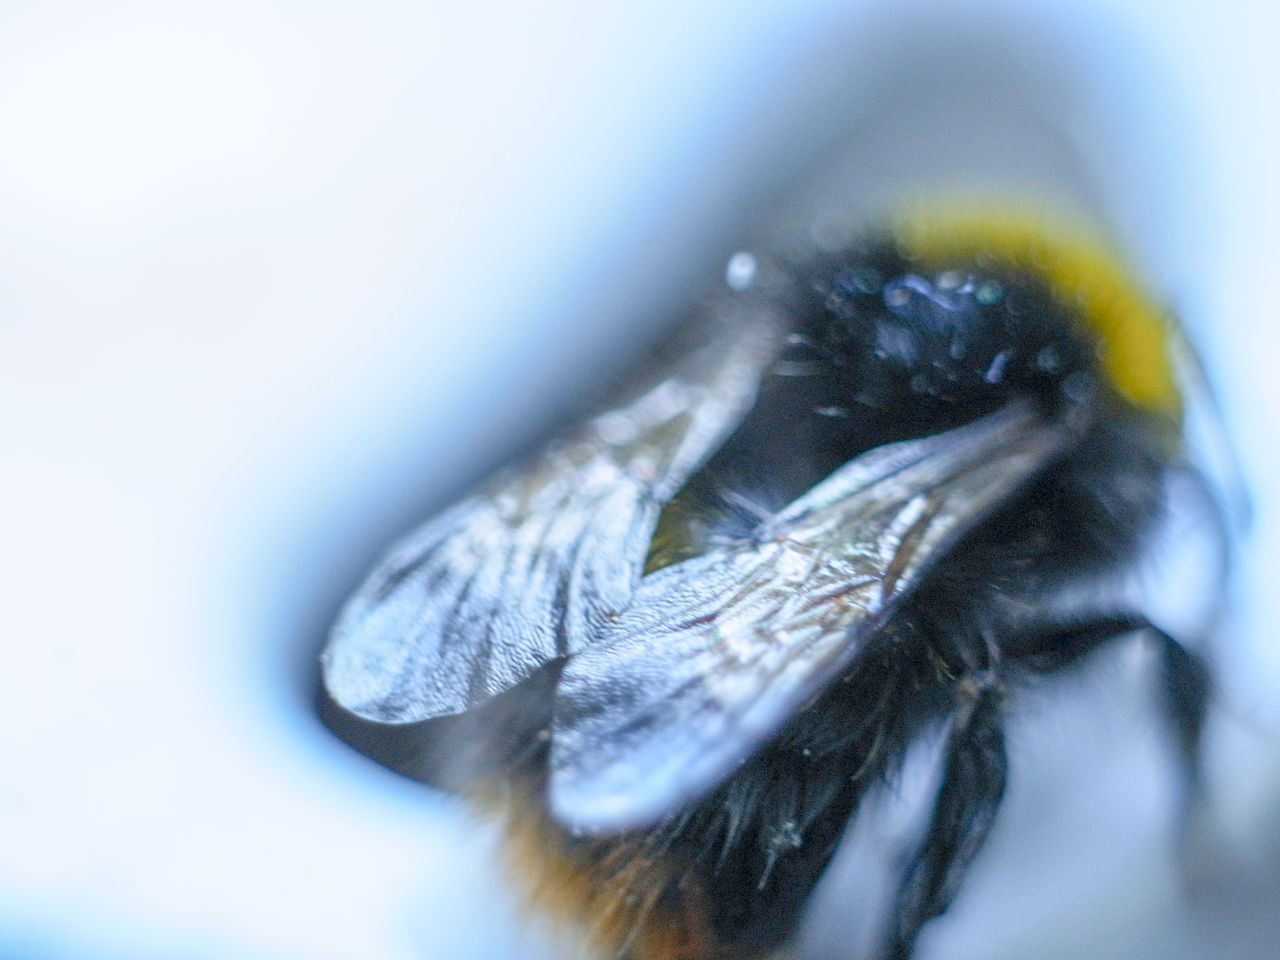 selective focus, close-up, invertebrate, animal, animal themes, insect, animals in the wild, no people, animal wing, day, one animal, animal wildlife, nature, extreme close-up, fly, housefly, outdoors, beauty in nature, macro, animal body part